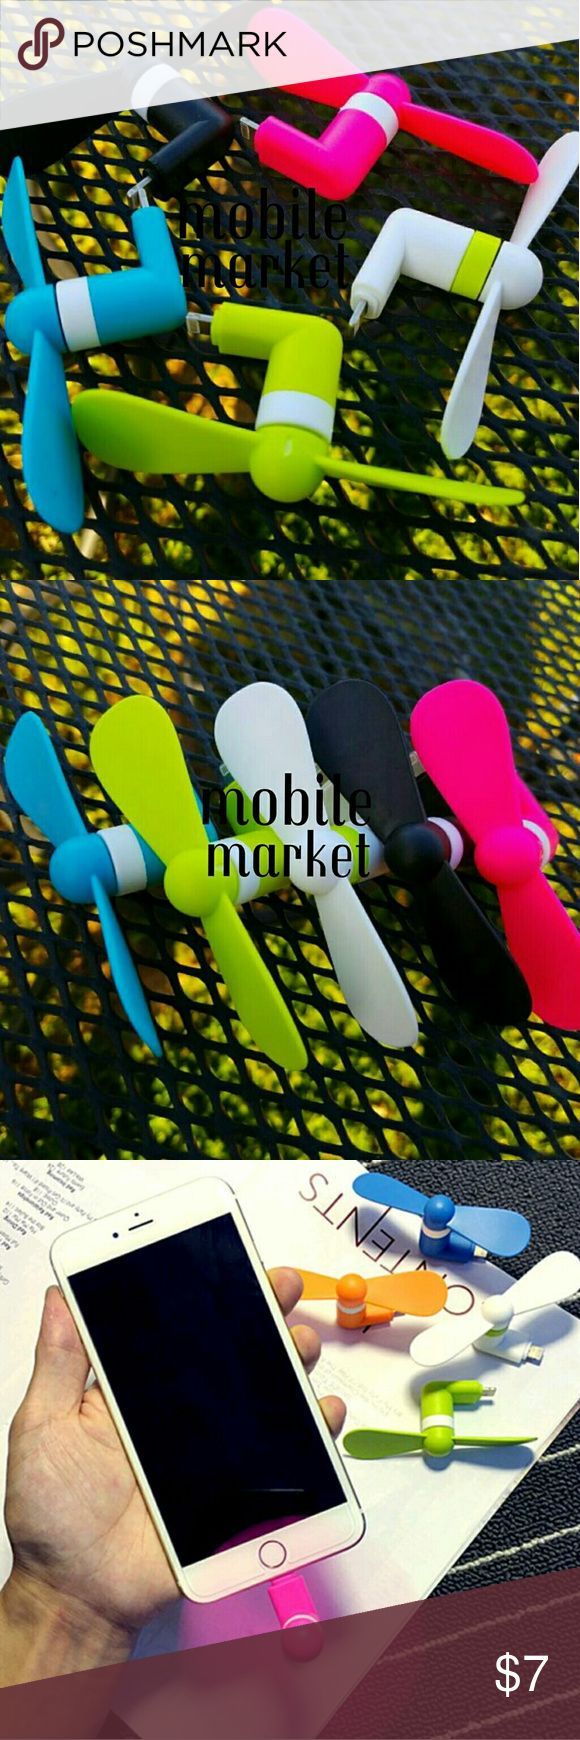 IPhone fan Colors available: Pink, green, white, blue, black  Great for summer! Just plug into your phone, ipad, ipod, smartwatch, etc and beat the heat! Tried and tested, good quality fan! The end is an 8 pin for apple.  Works with  Iphone 5, 5s, 5c, 6, 6s, 6 plus, 6s plus, SE, 7, 7 plus Ipod and iPad that take the 8 pin charger Accessories